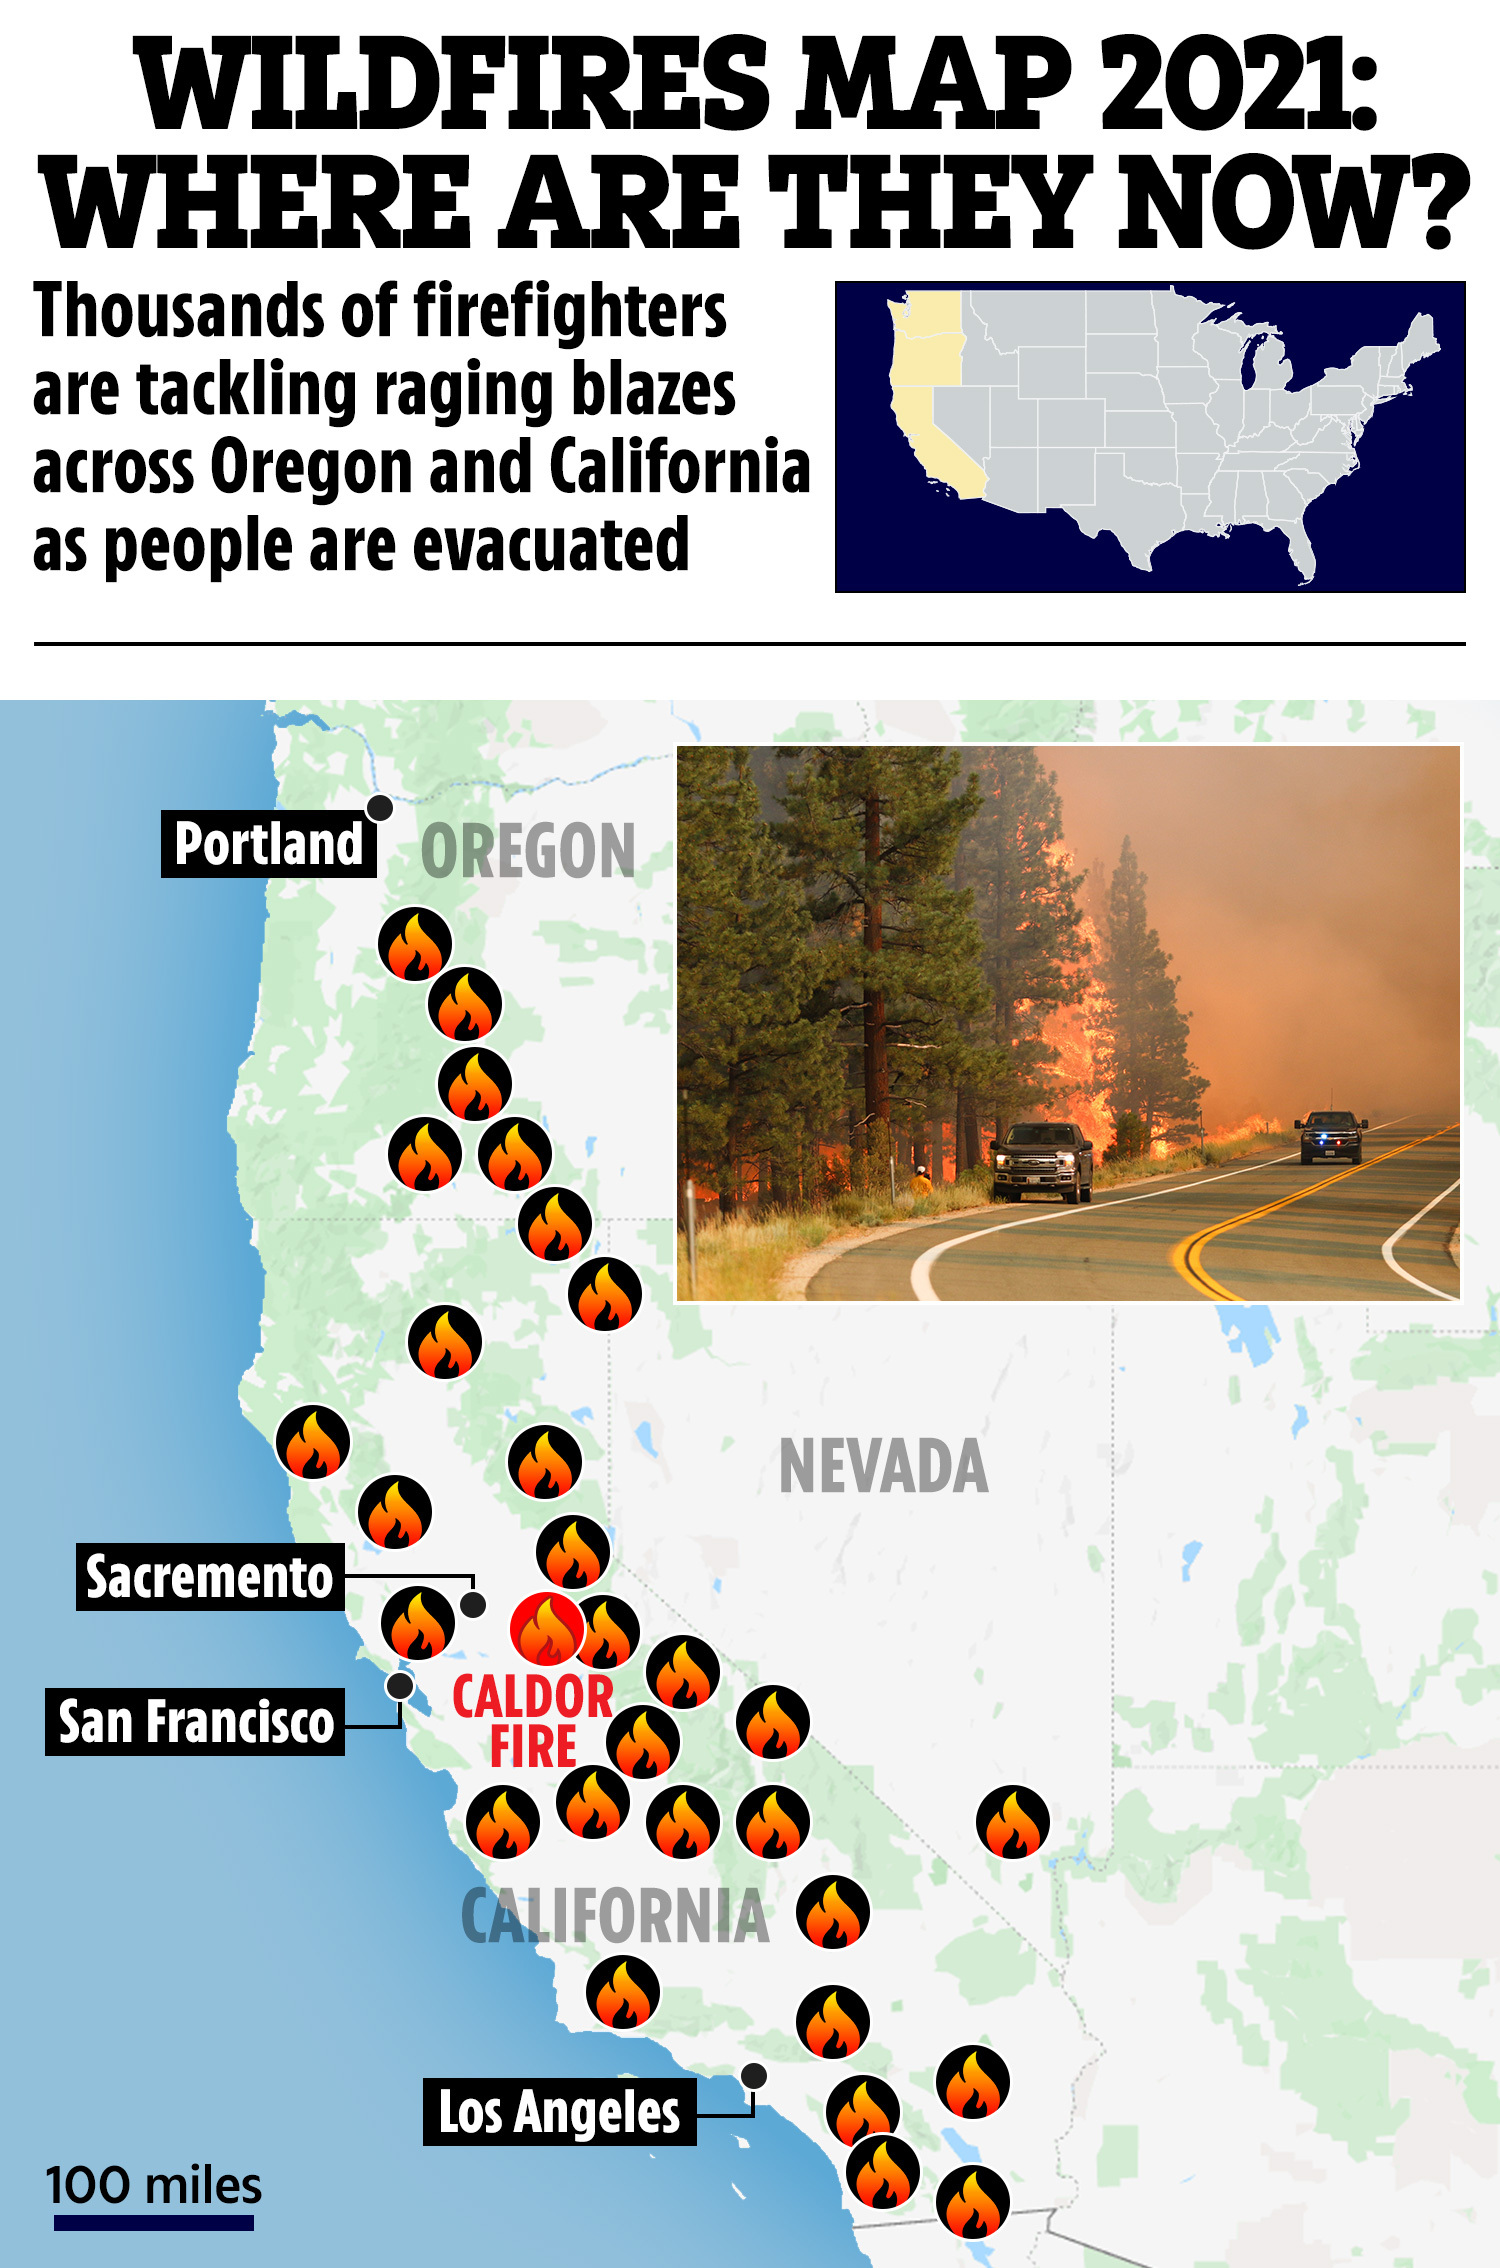 June 29, 2021 at 8:35 a.m. Wildfires Map 2021 Where Are They Now